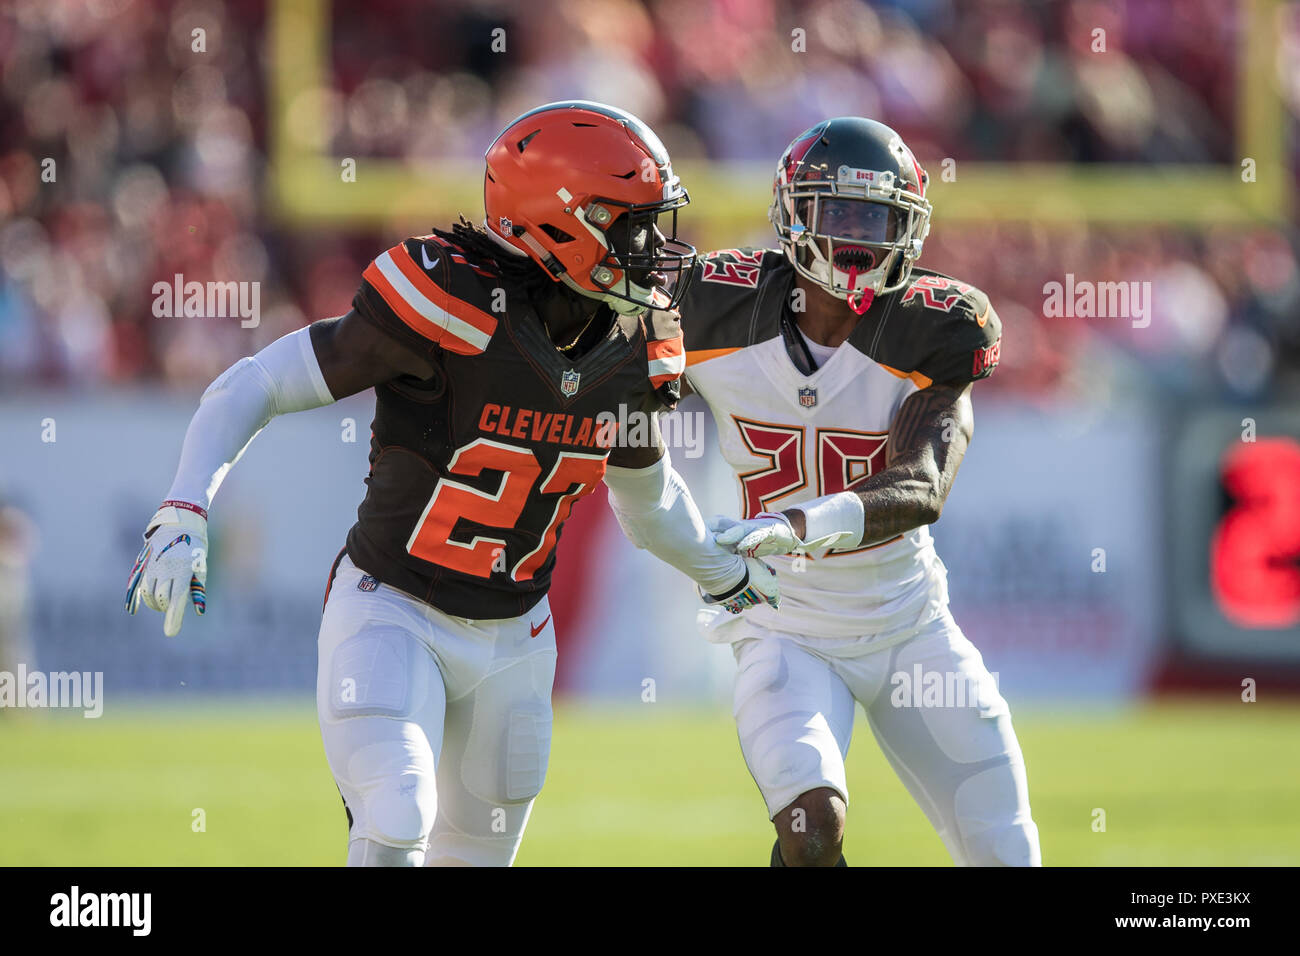 outlet store 68ddc ef64e Tampa, Florida, USA. 21st Oct, 2018. Cleveland Browns ...